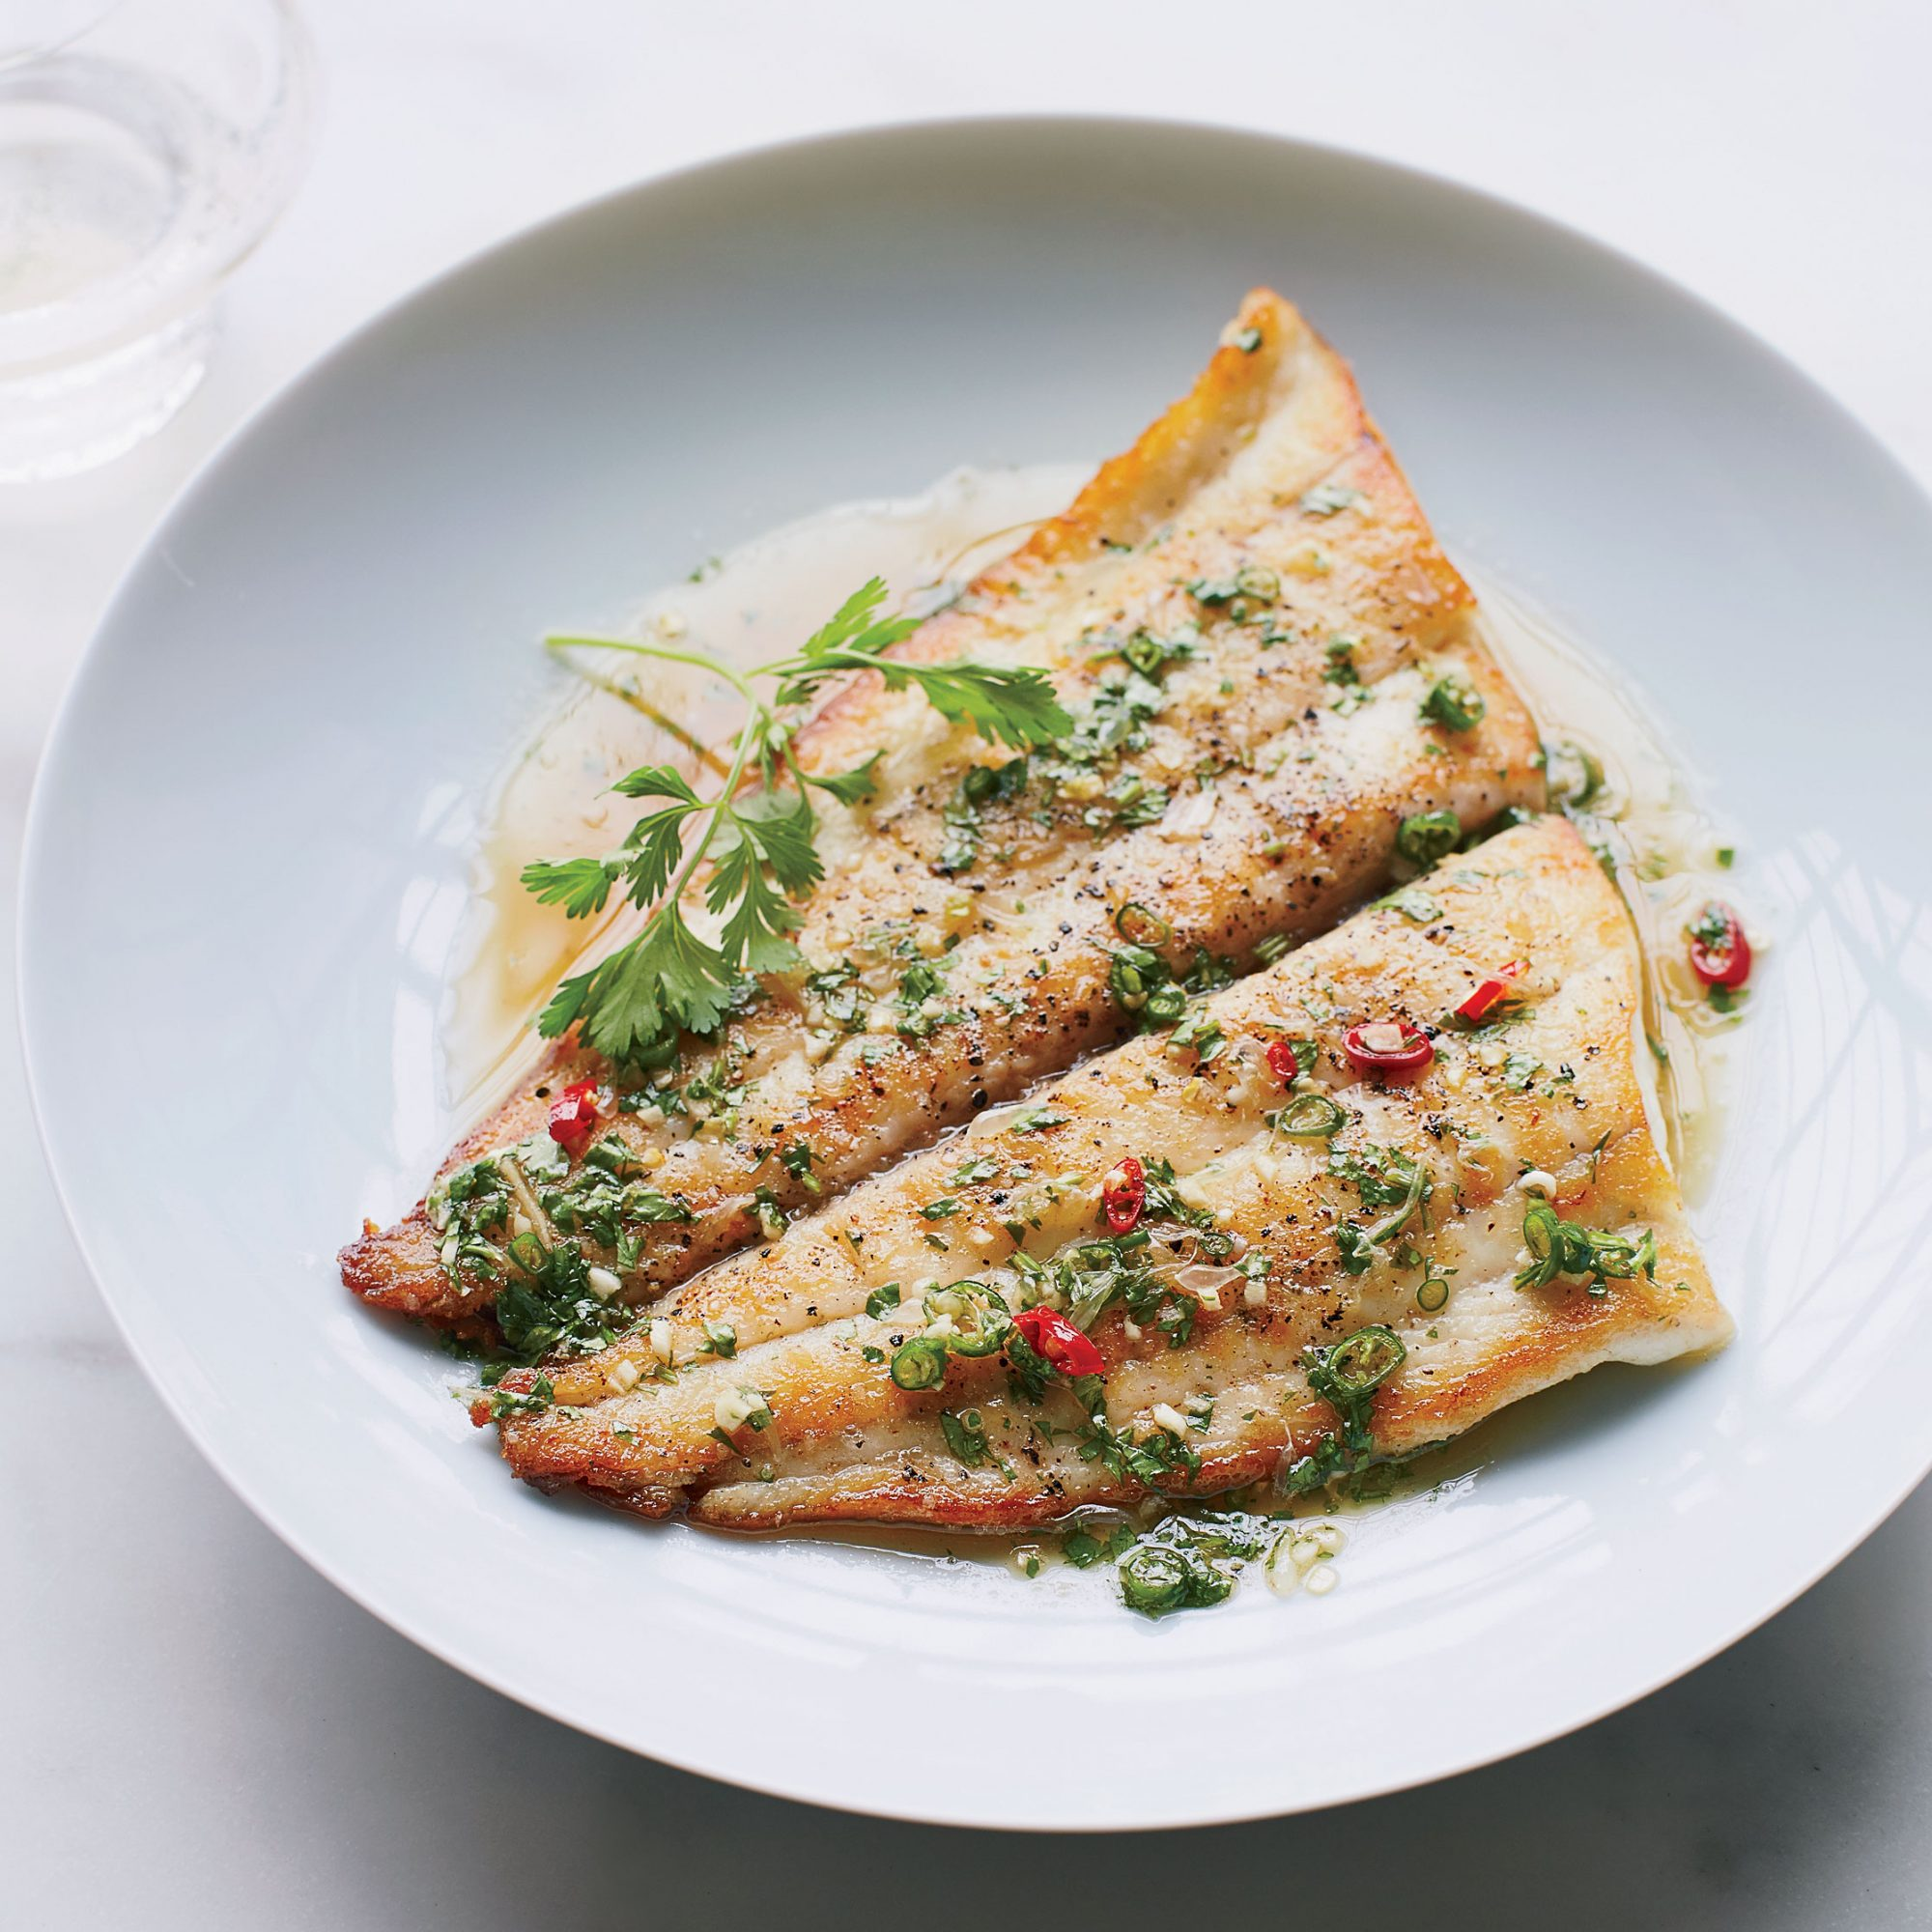 Seard Sole and Lime Sauce